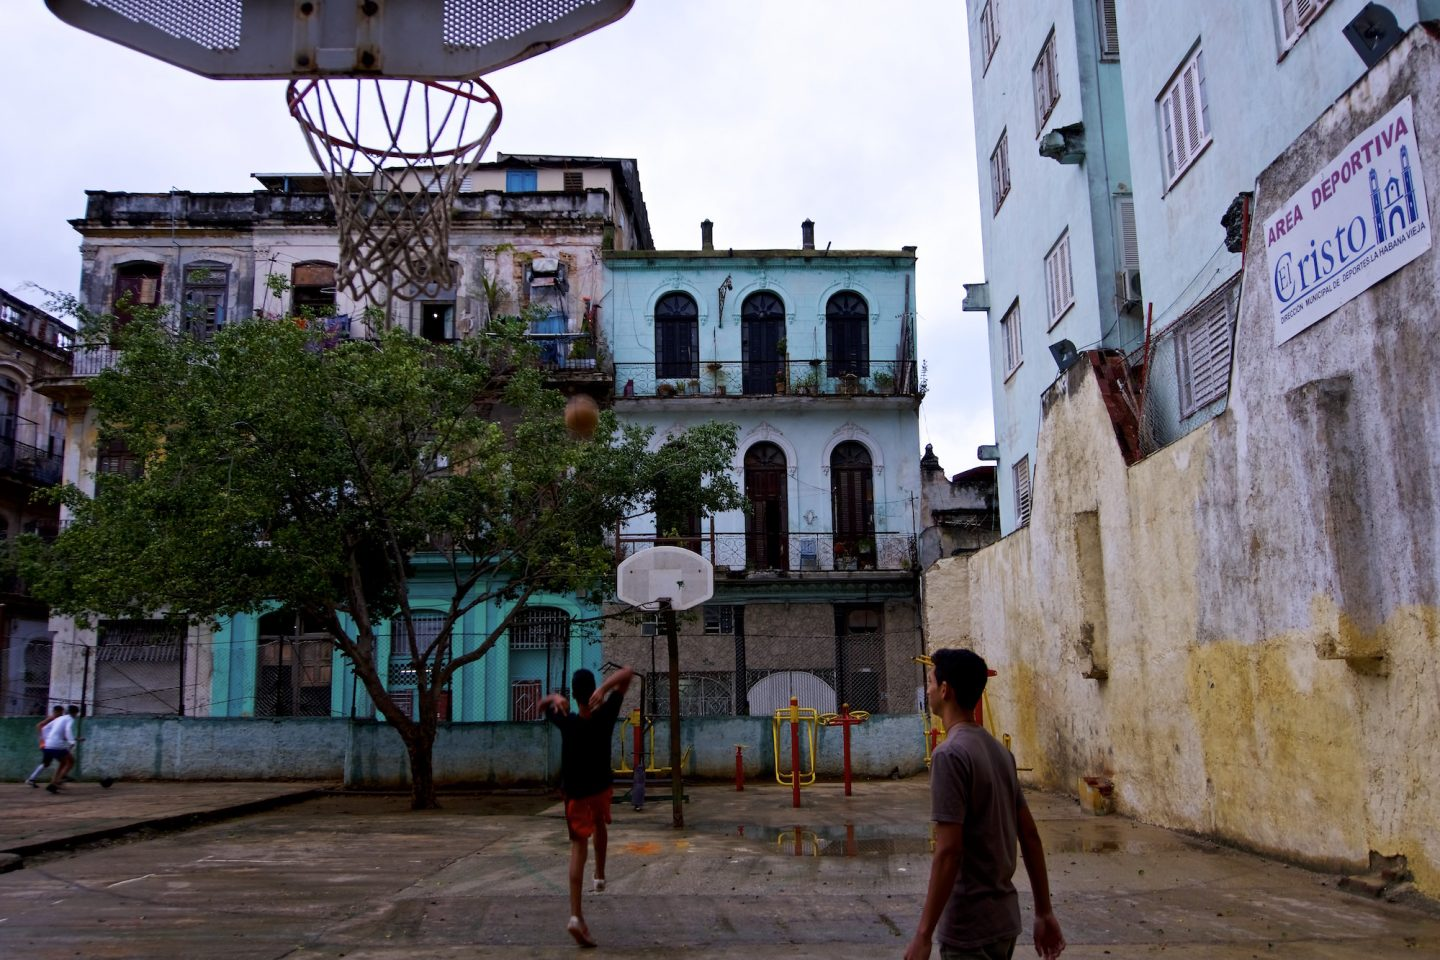 Street basketball game in Havana. Daily life in Cuba.